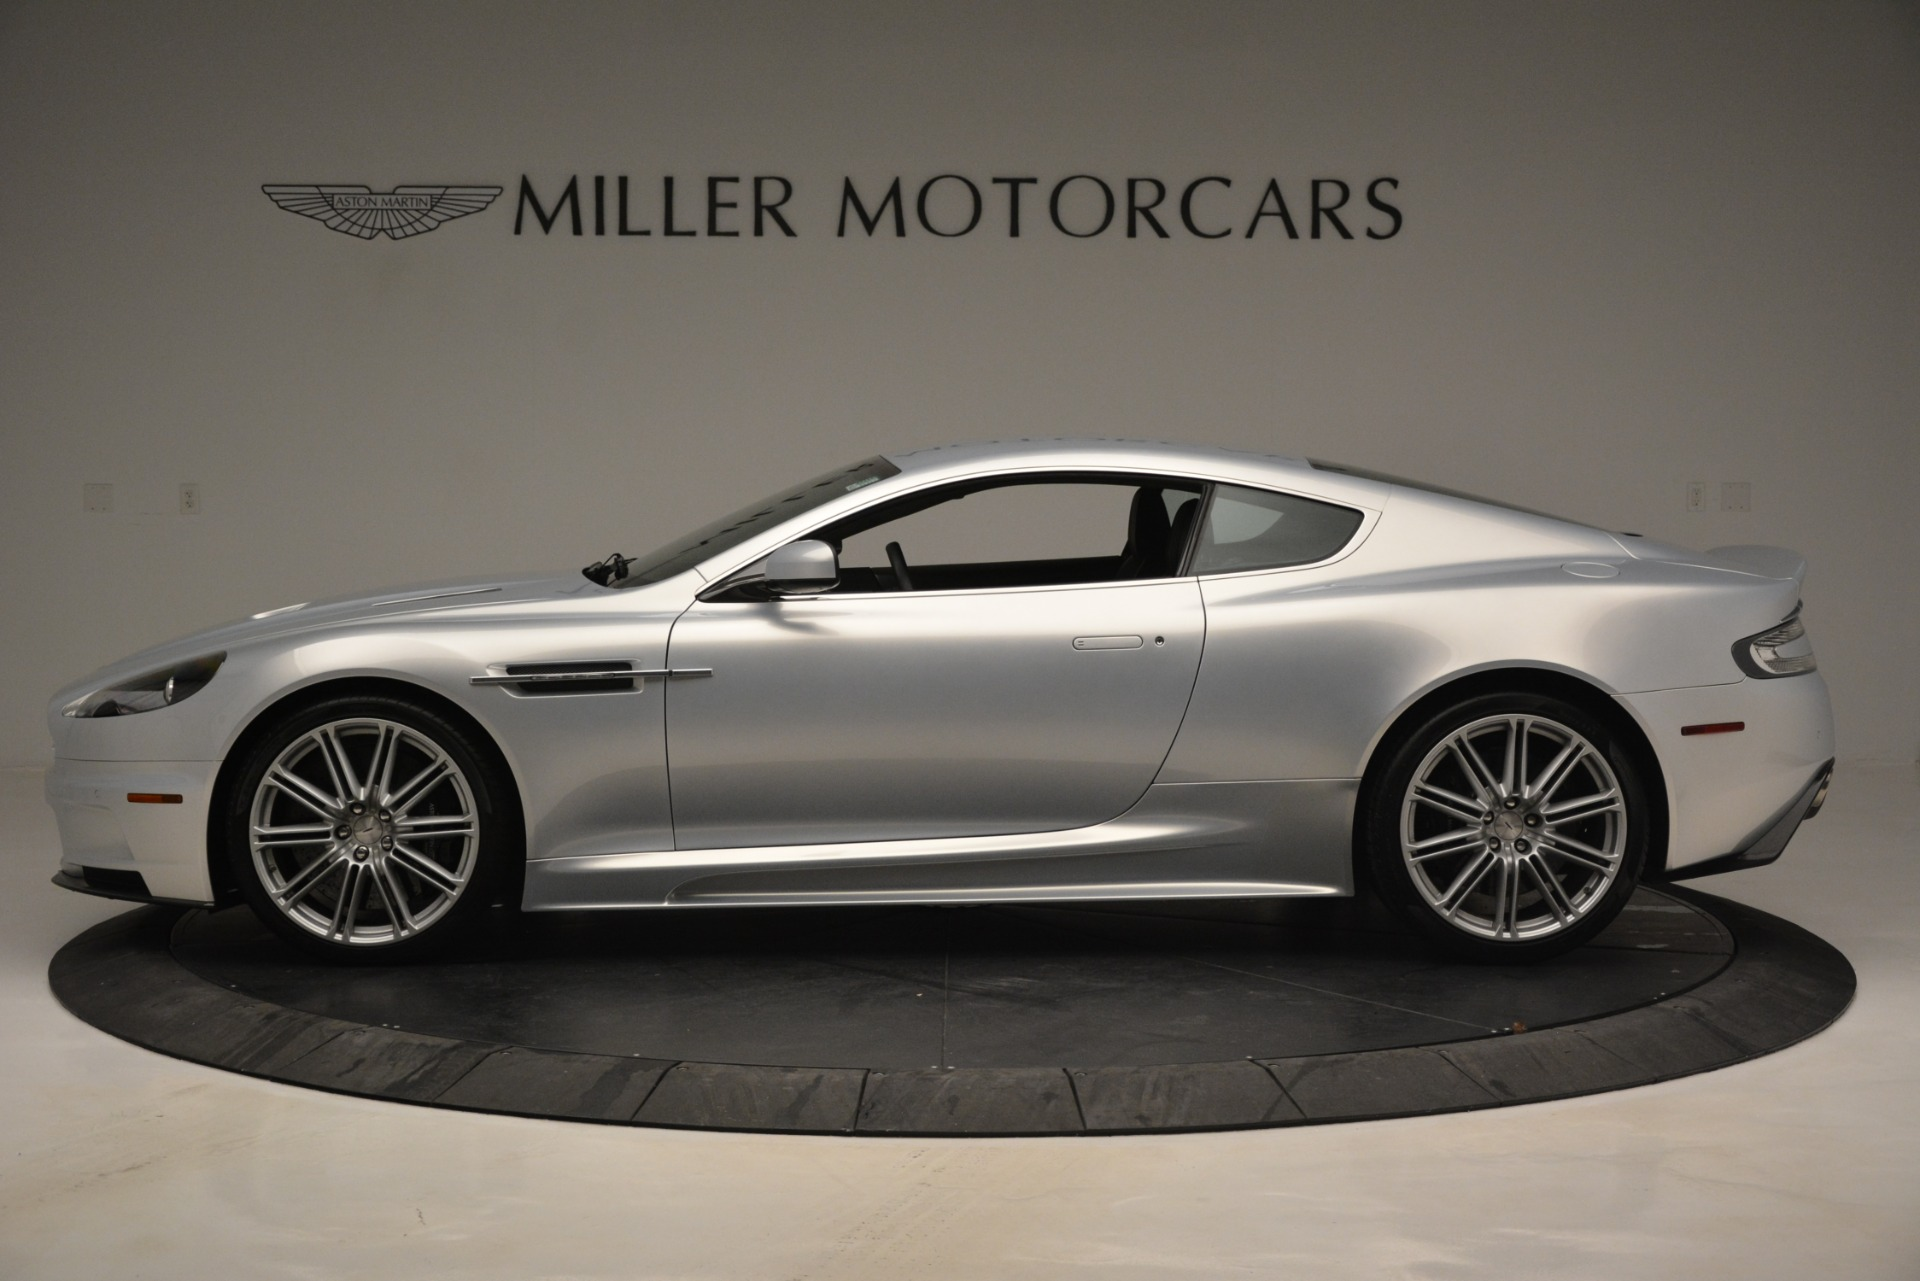 Used 2009 Aston Martin DBS Coupe For Sale In Greenwich, CT 3033_p3